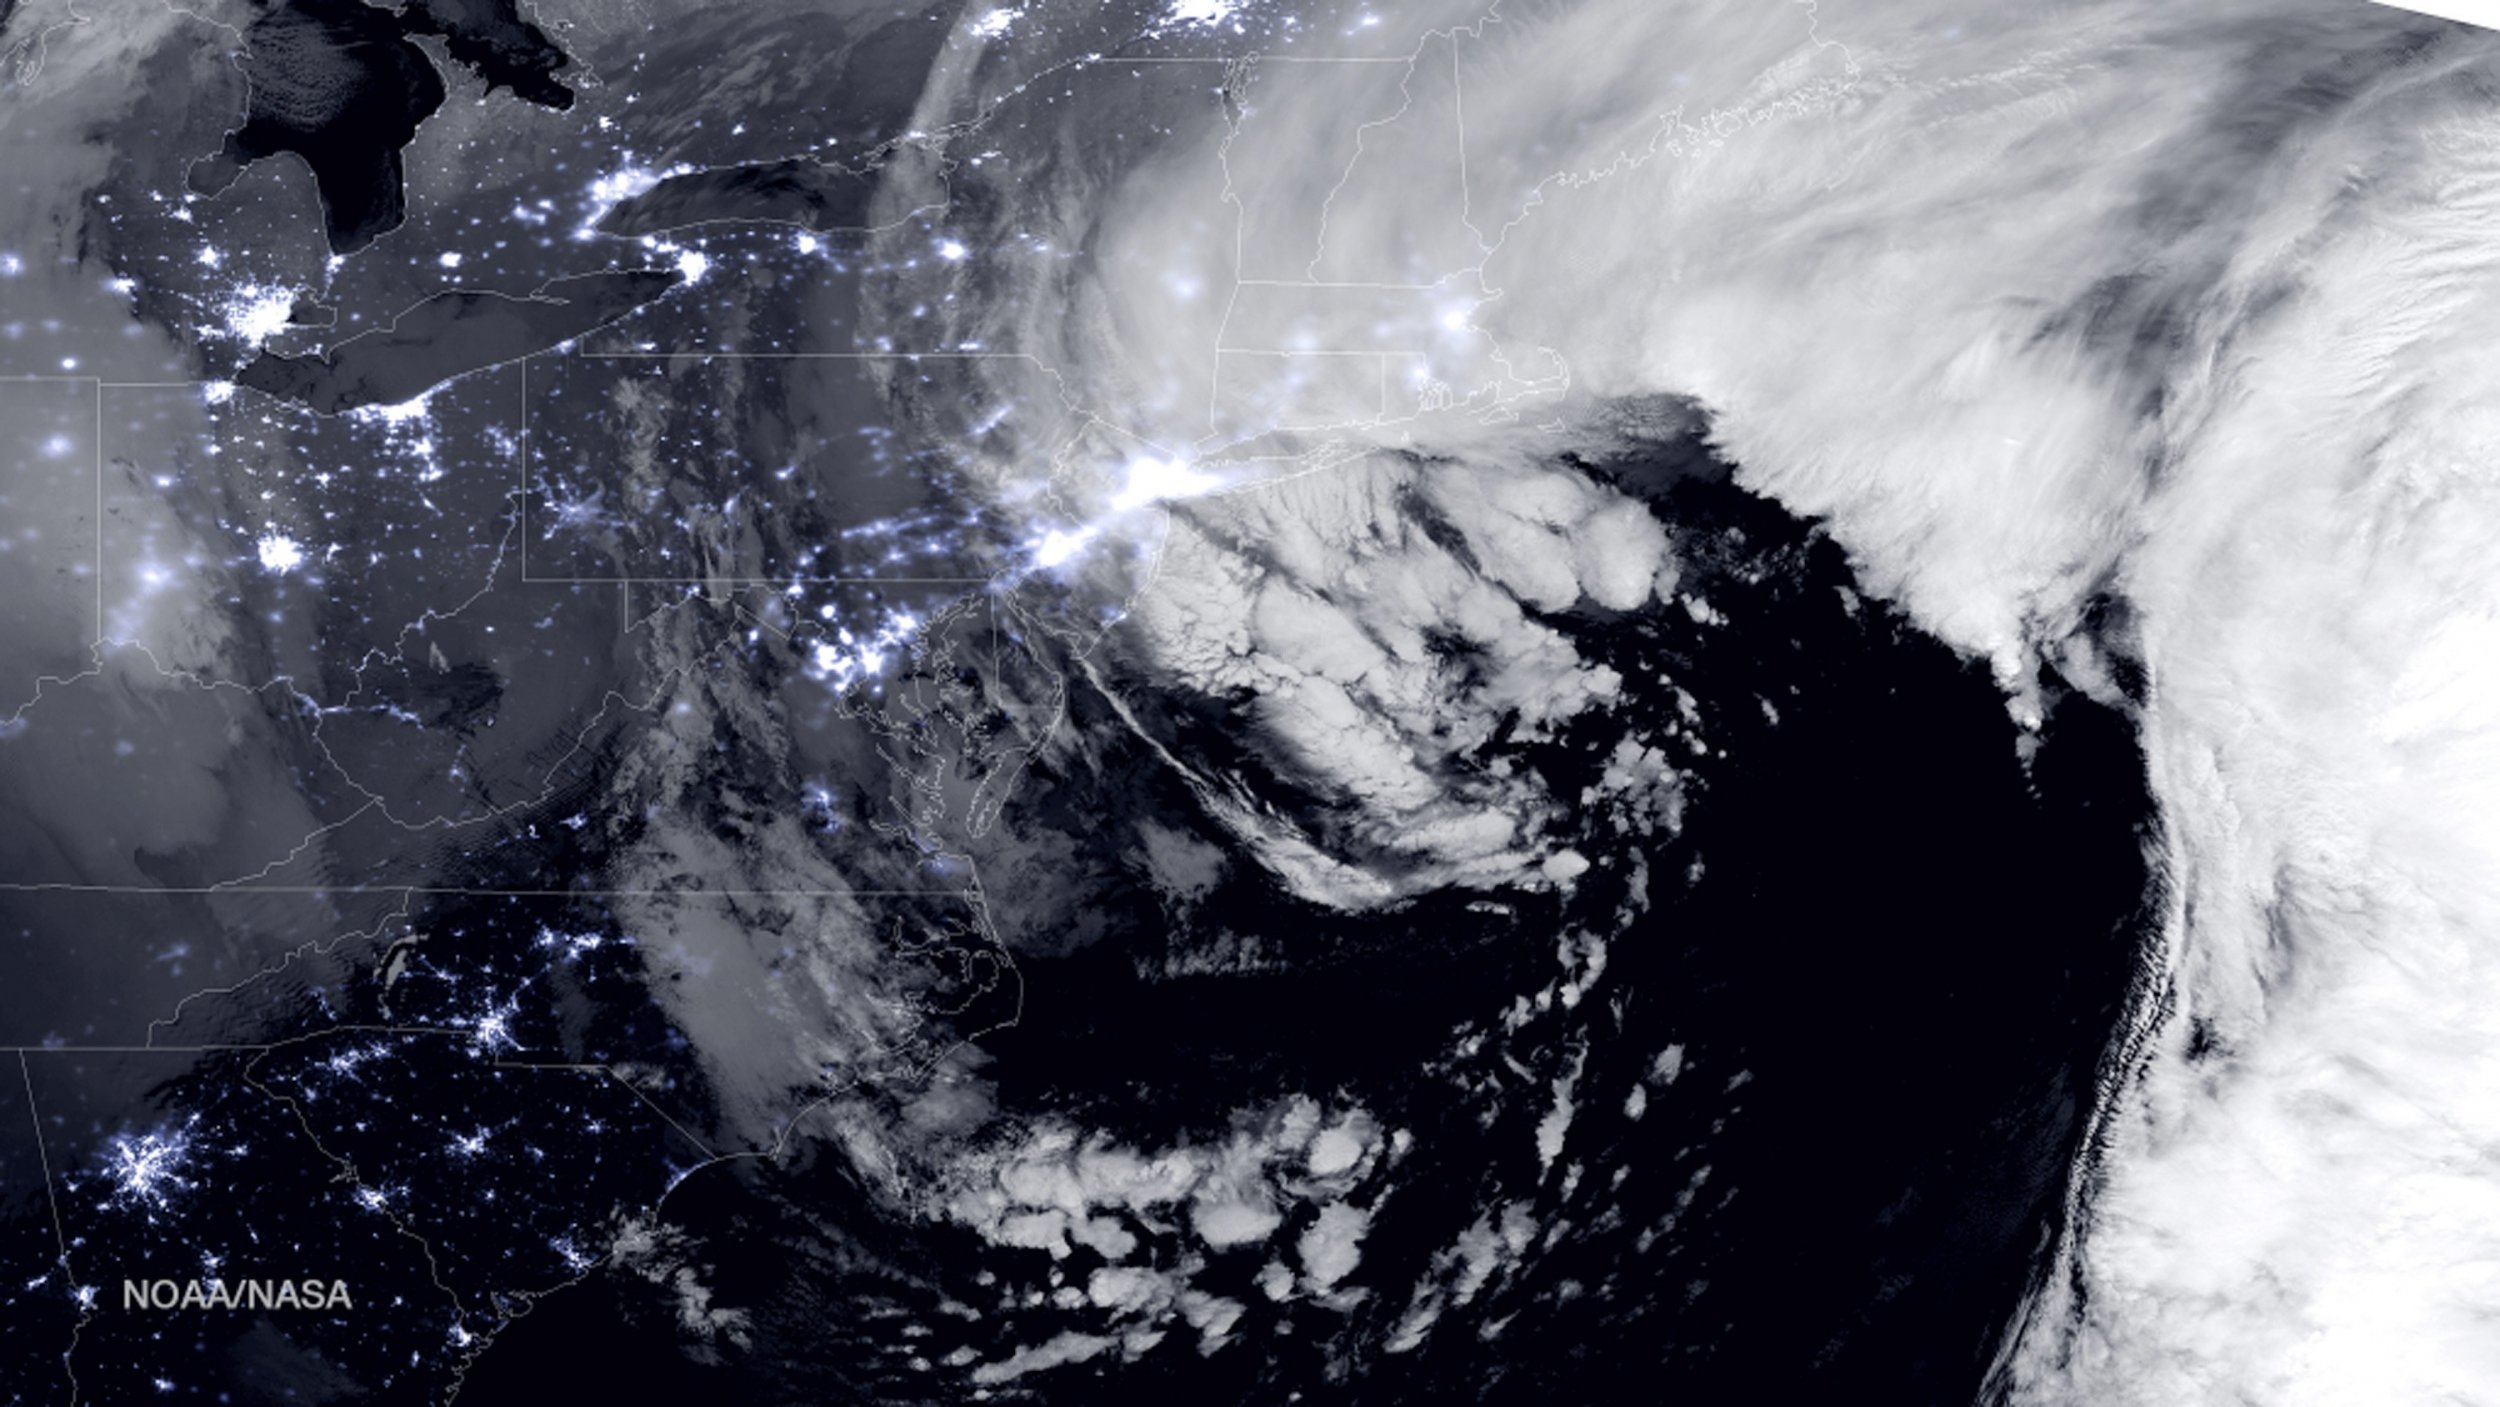 2015-01-27T161933Z_1624093598_TM3EB1R0V8C01_RTRMADP_3_USA-WEATHER-STORM